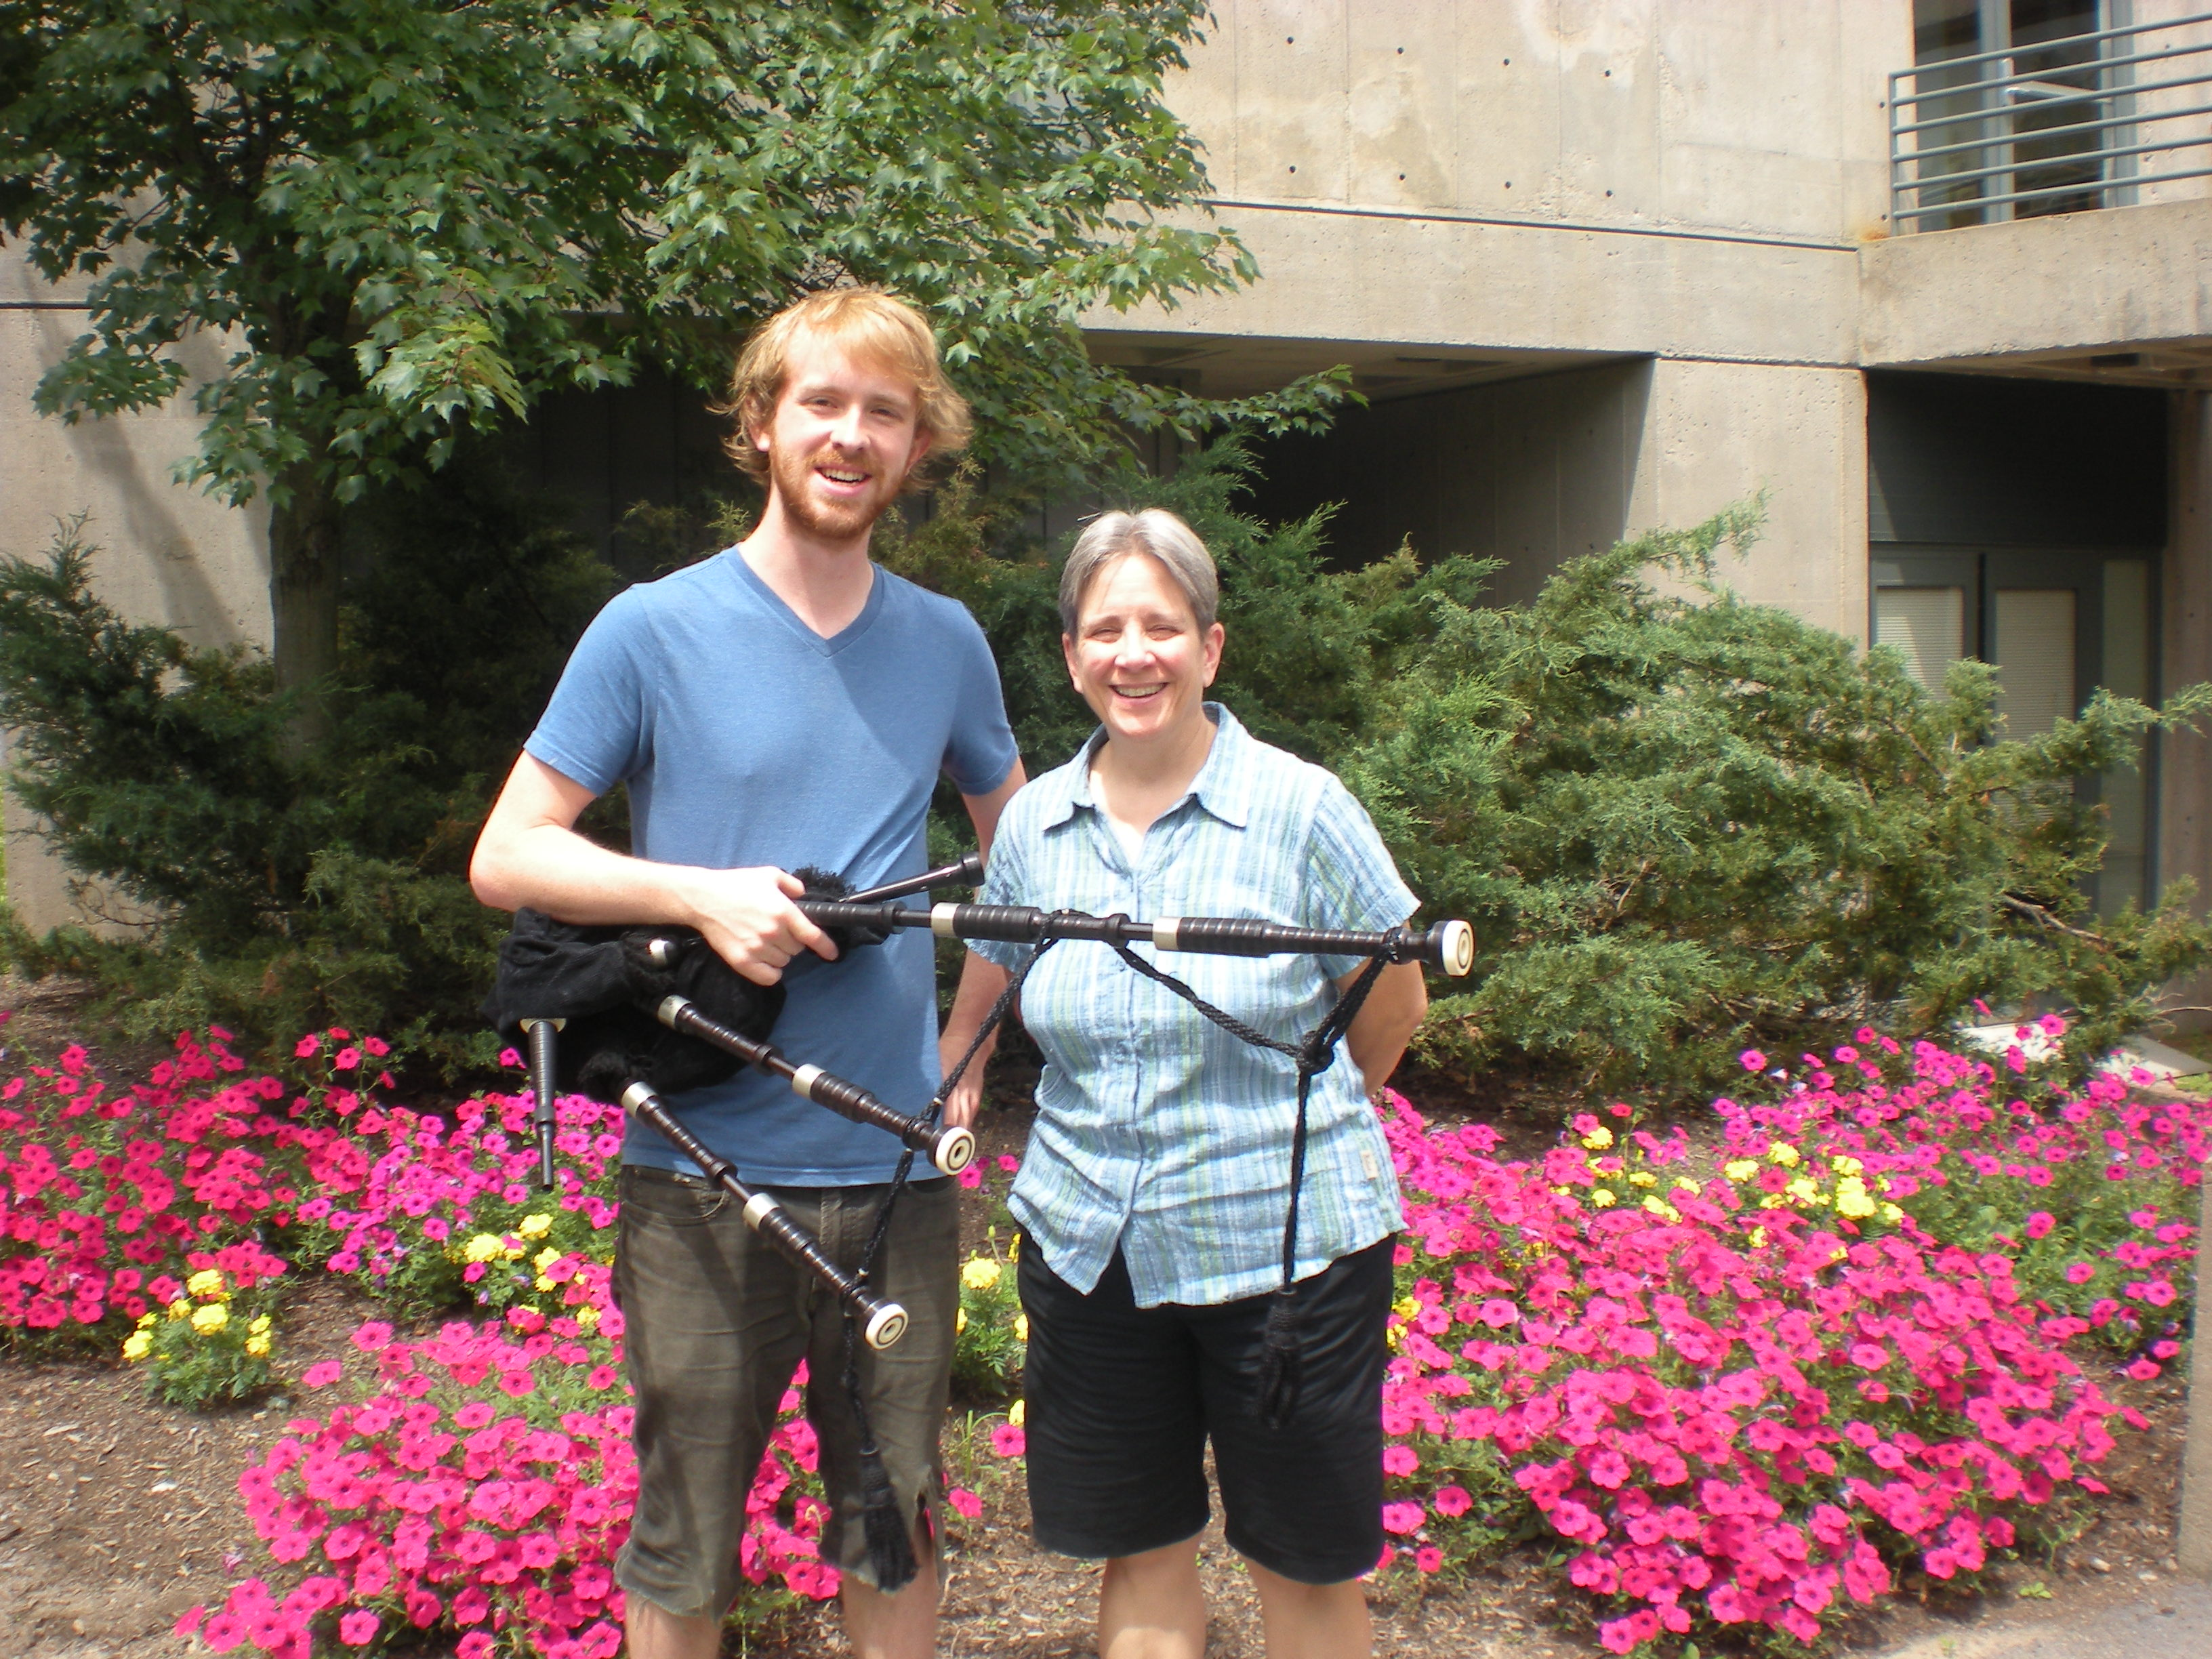 Nathaniel Livingston '14 with his advisor Prof. Lydia Hamessley.